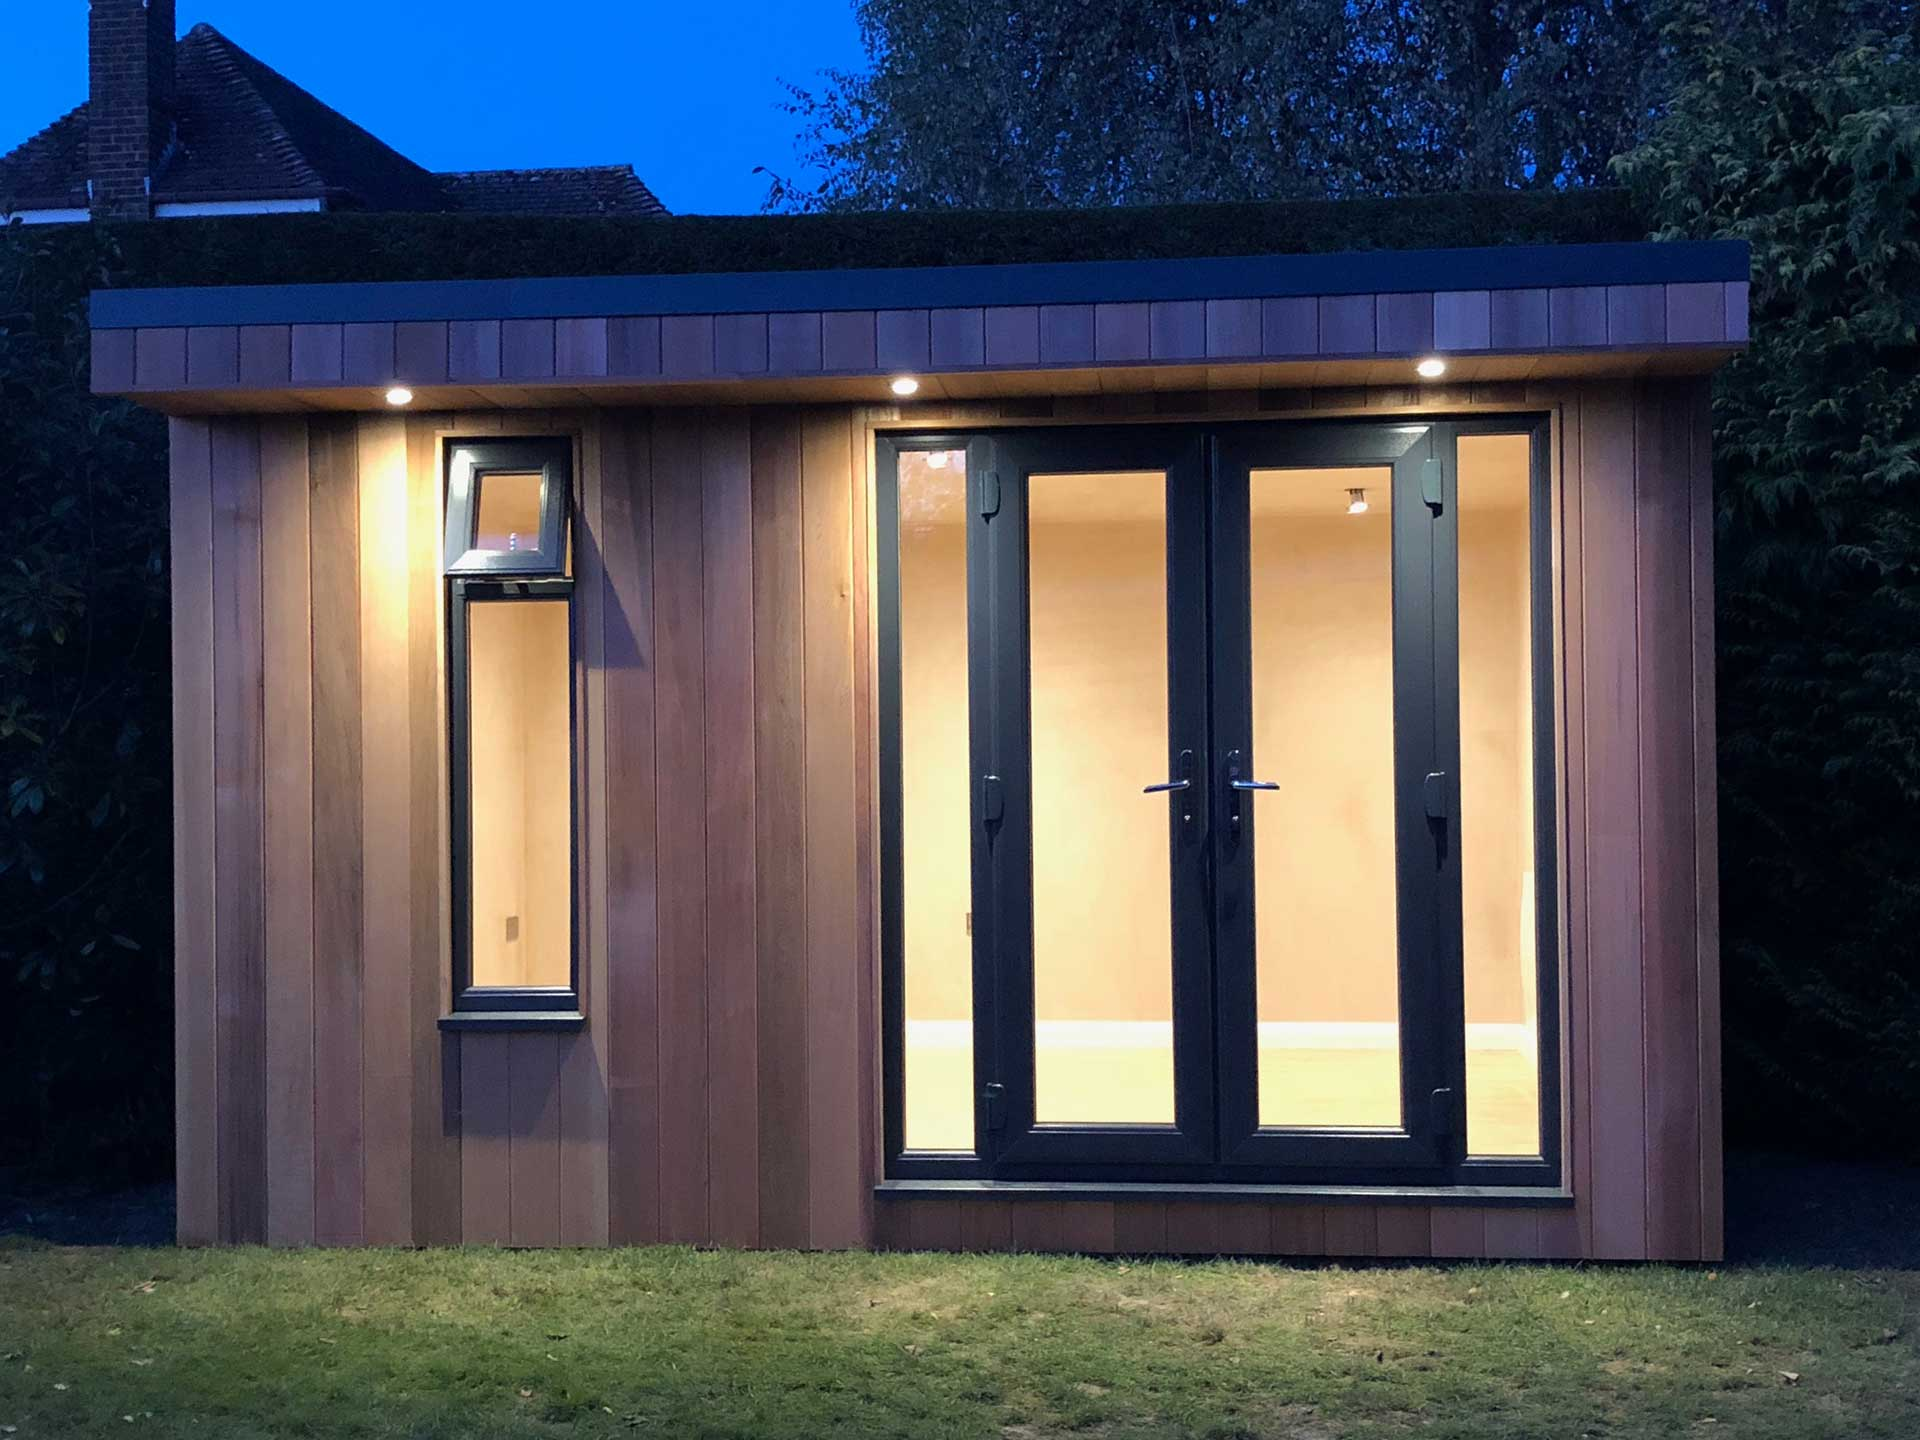 Garden room with double doors and vertical window with spotights illuminated